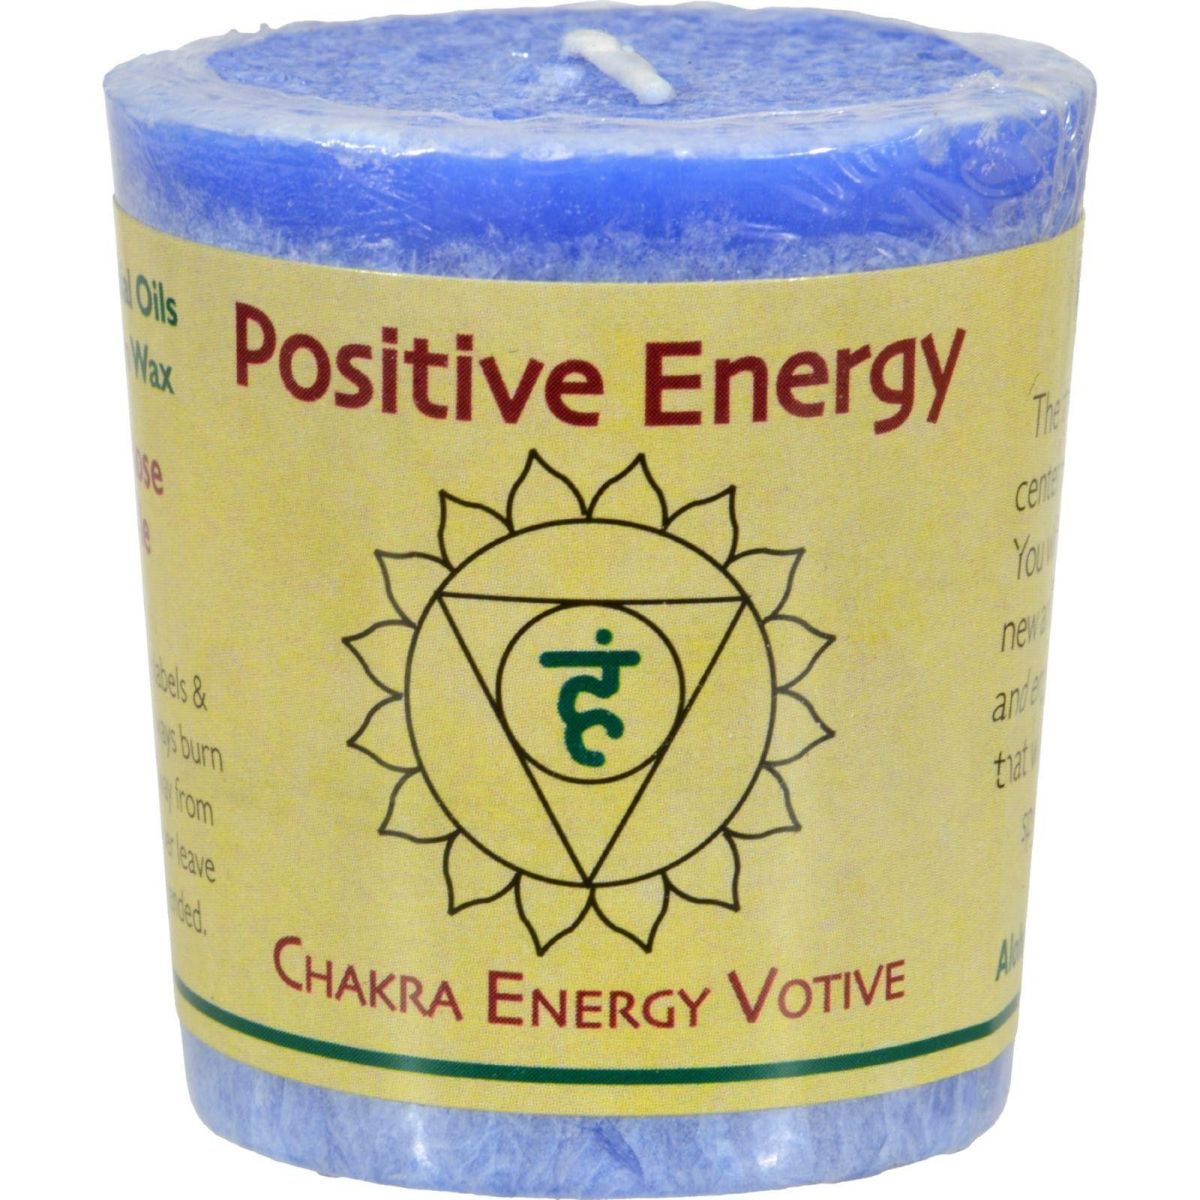 Positive energy votive candle with throats chakra activation